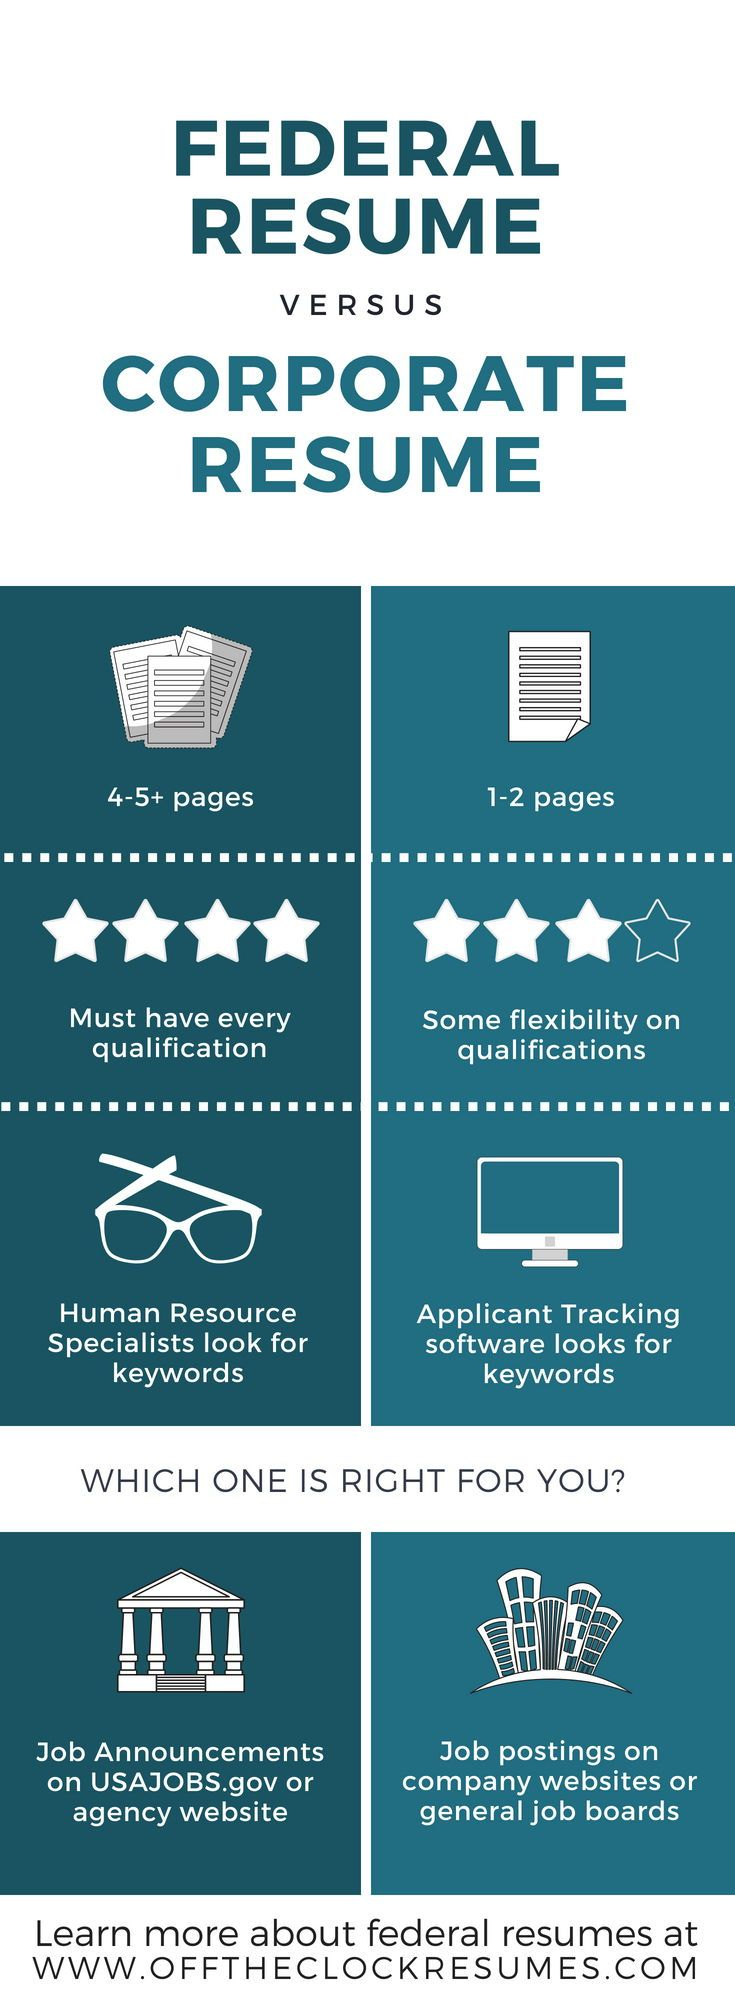 Federal resume vs corporate resume which one is right